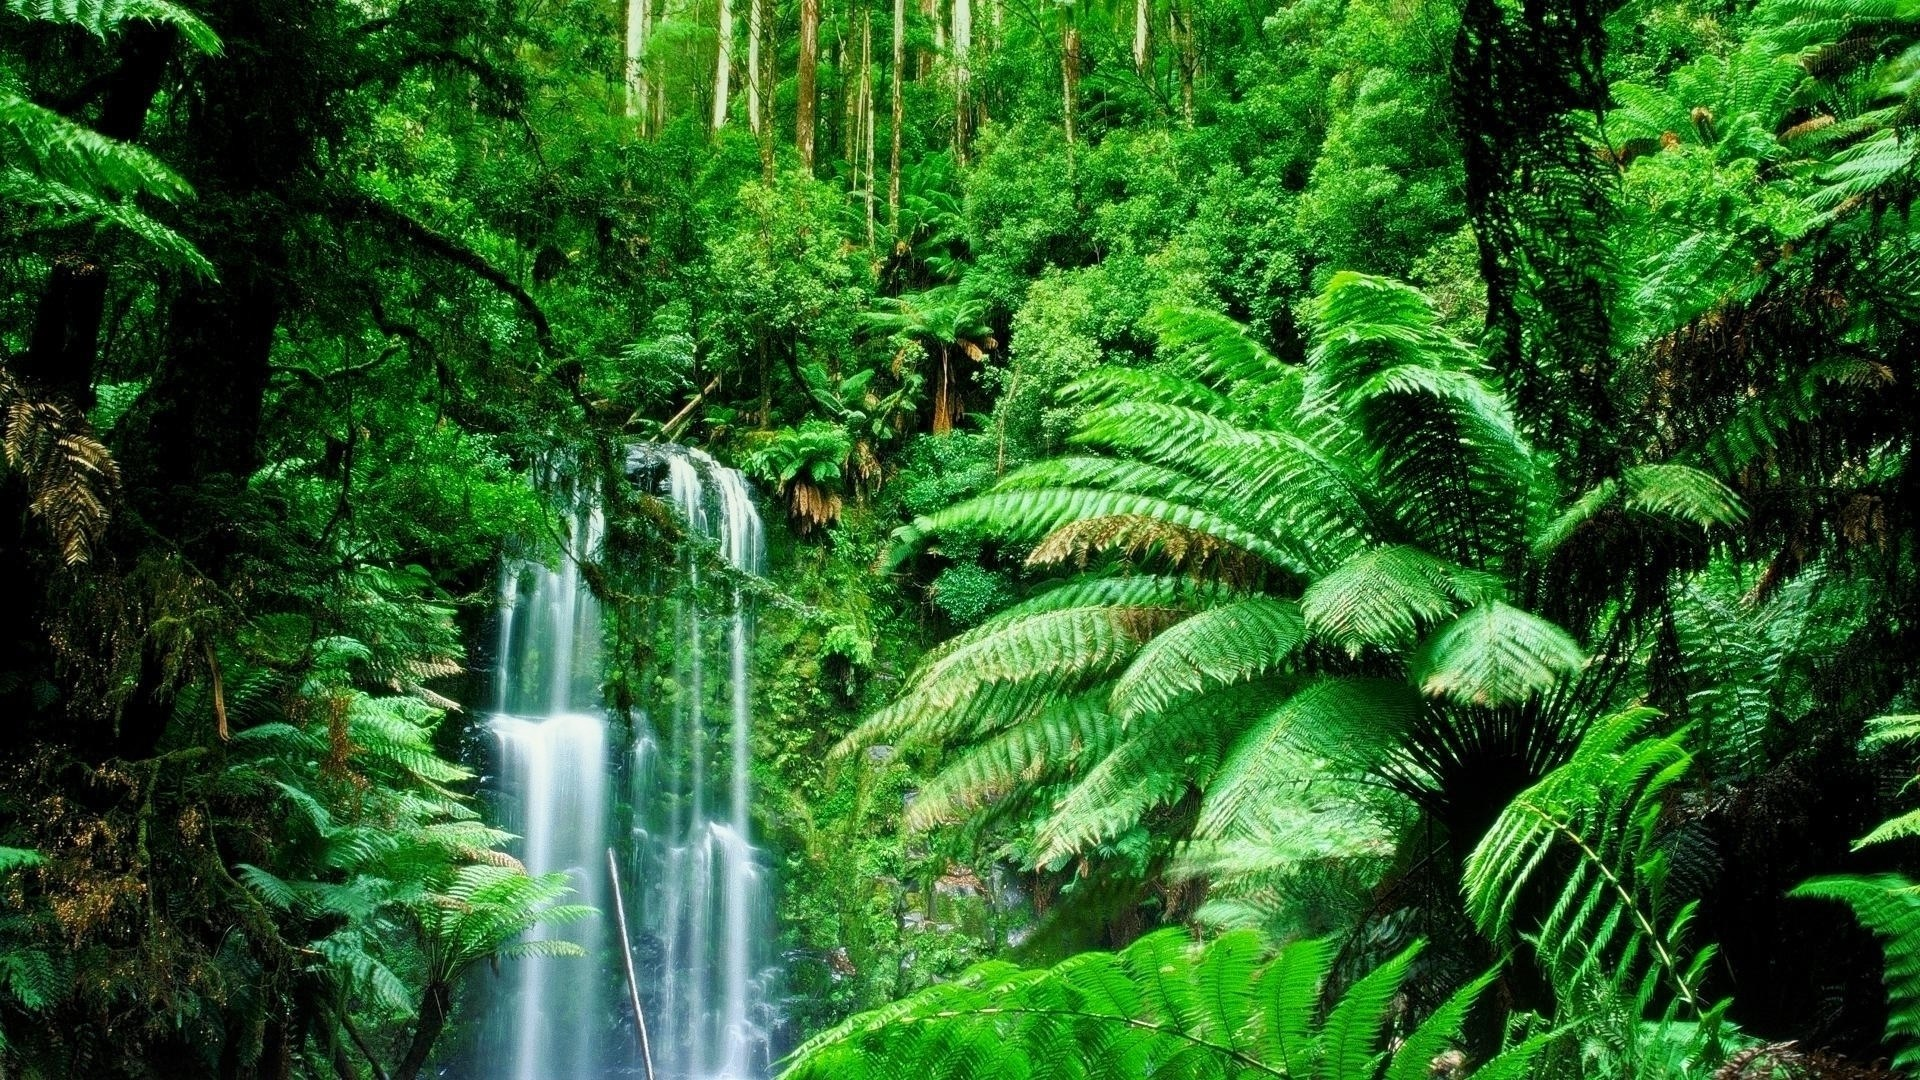 1920-x-1080-px-rainforest-picture-1080p-windows-by-Kavon-Leapman-wallpaper-wp340722